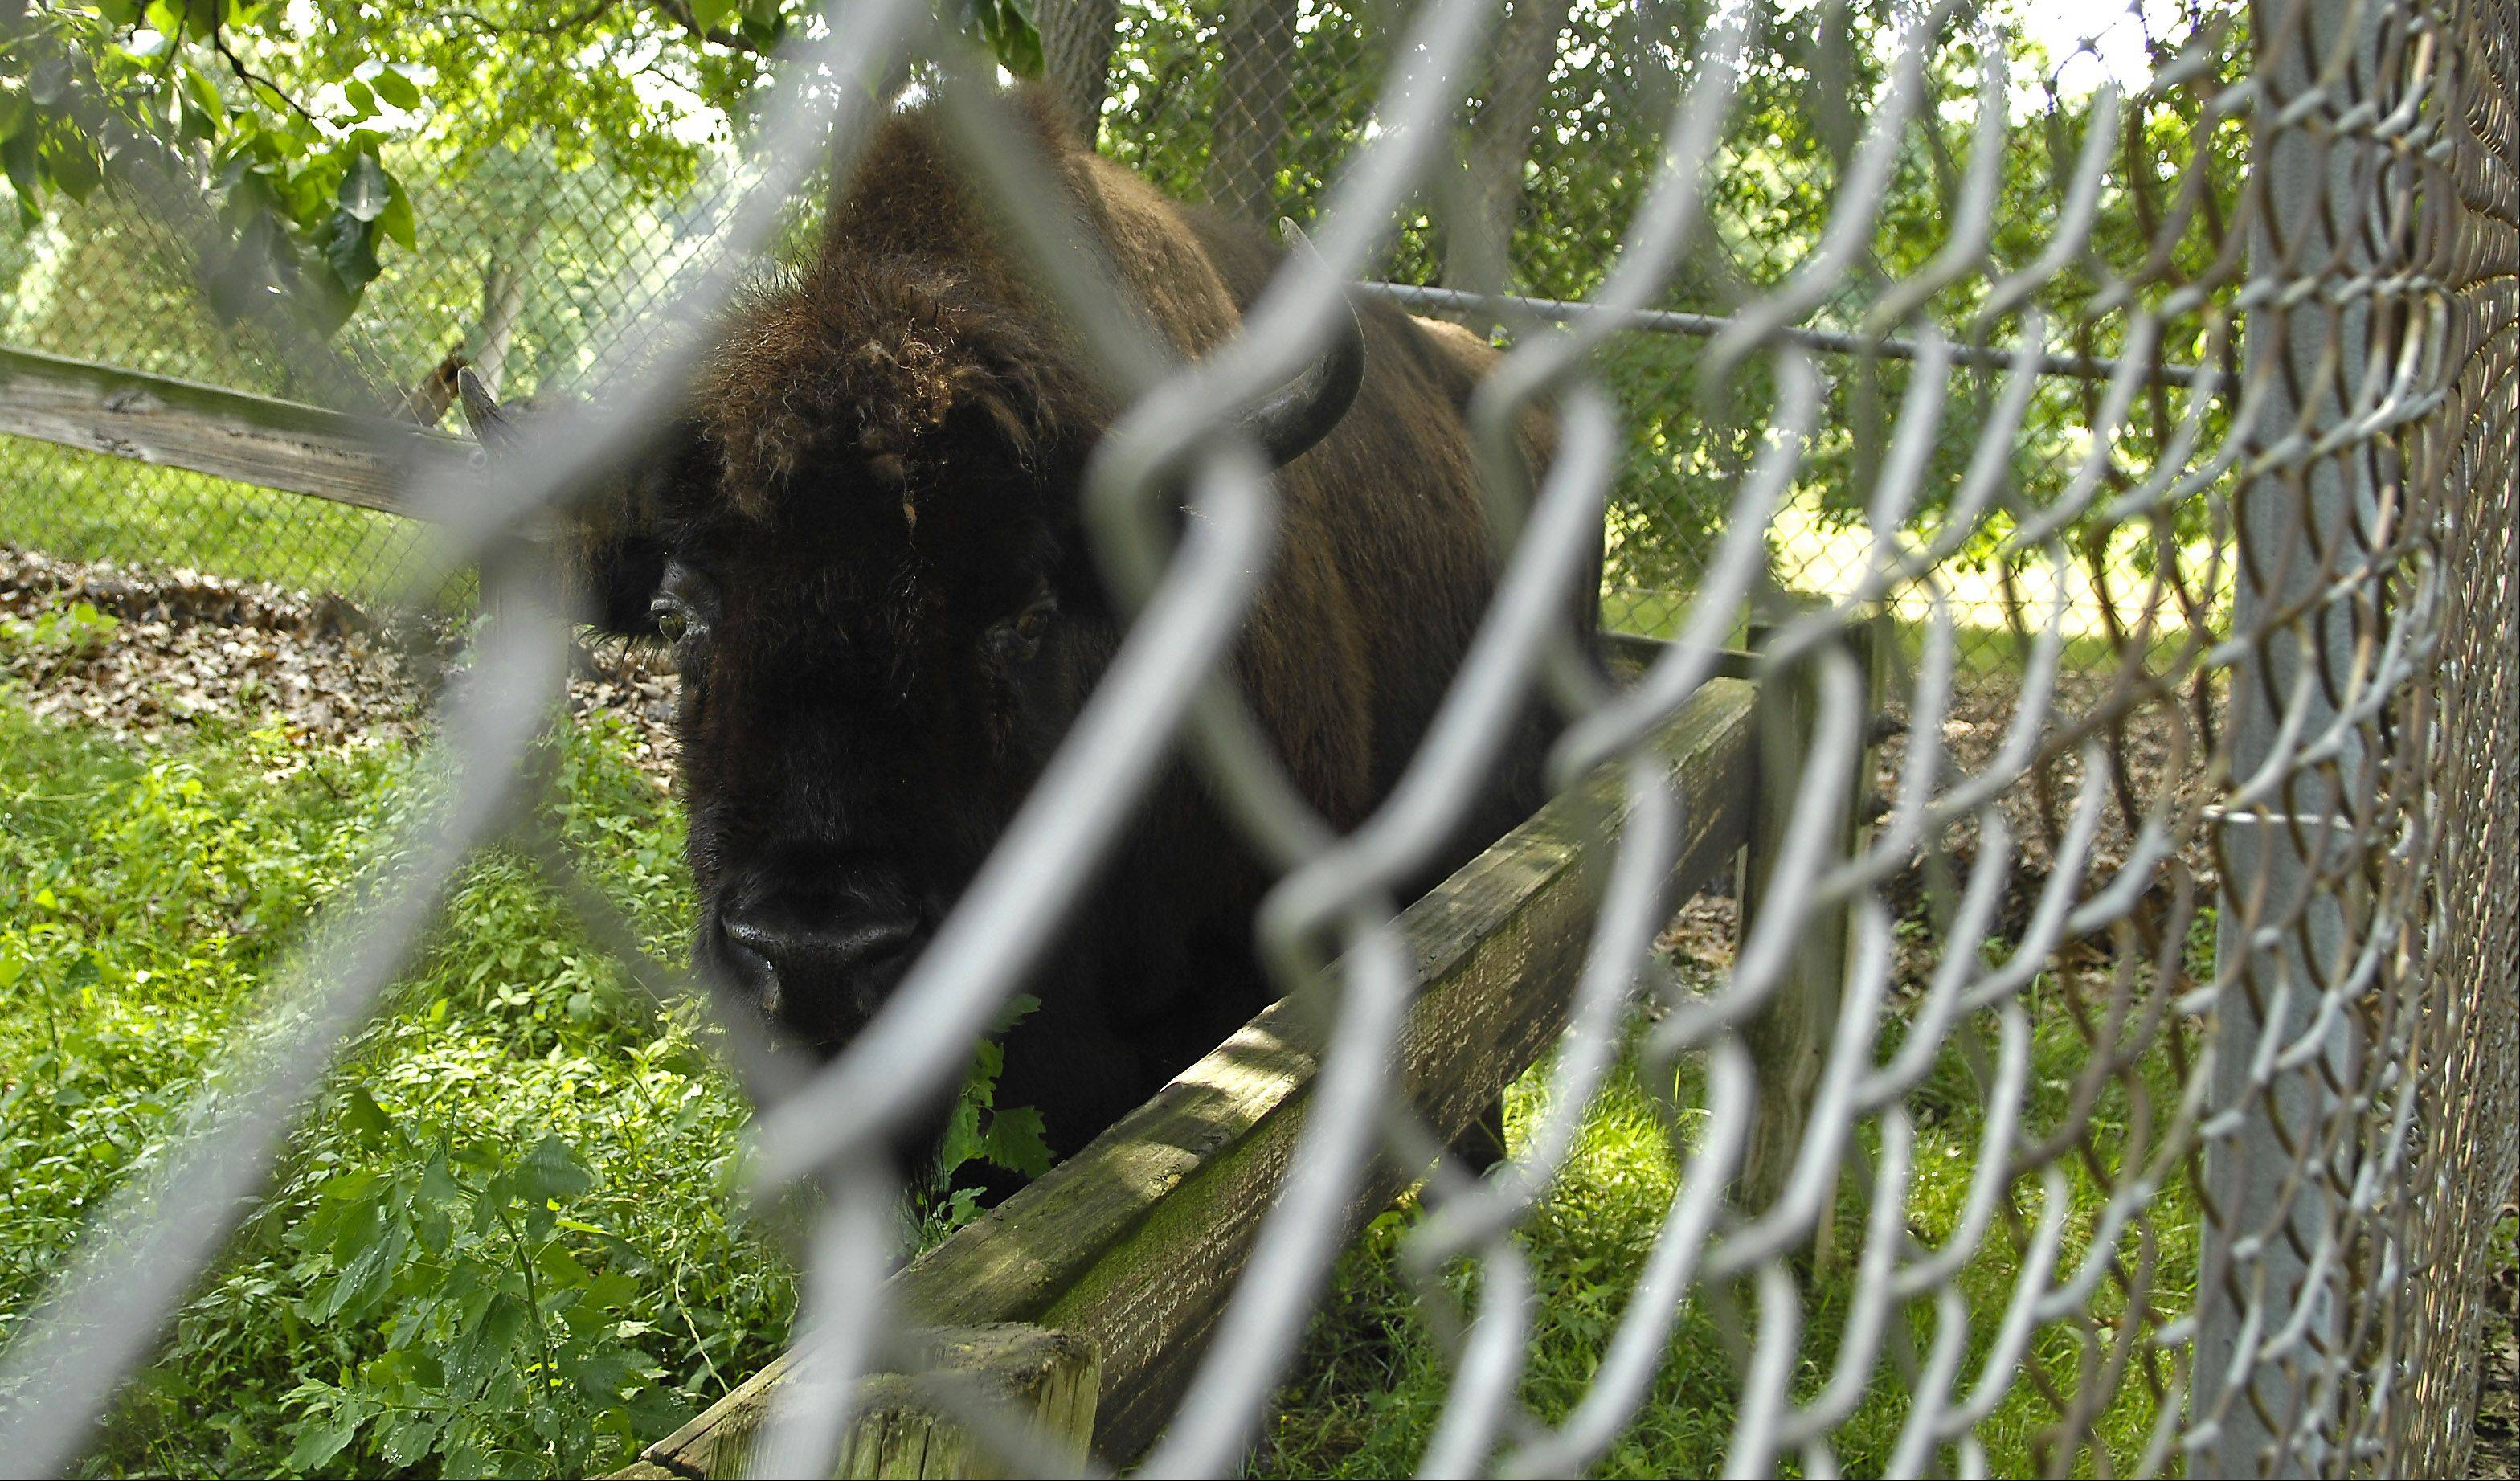 Elgin City Council members gave preliminary approval Wednesday to solicit bids for replacing fencing of the bison pen at Lords Park Zoo. There is only one lone bison left of the city's herd since Cahoya died of old age last week.